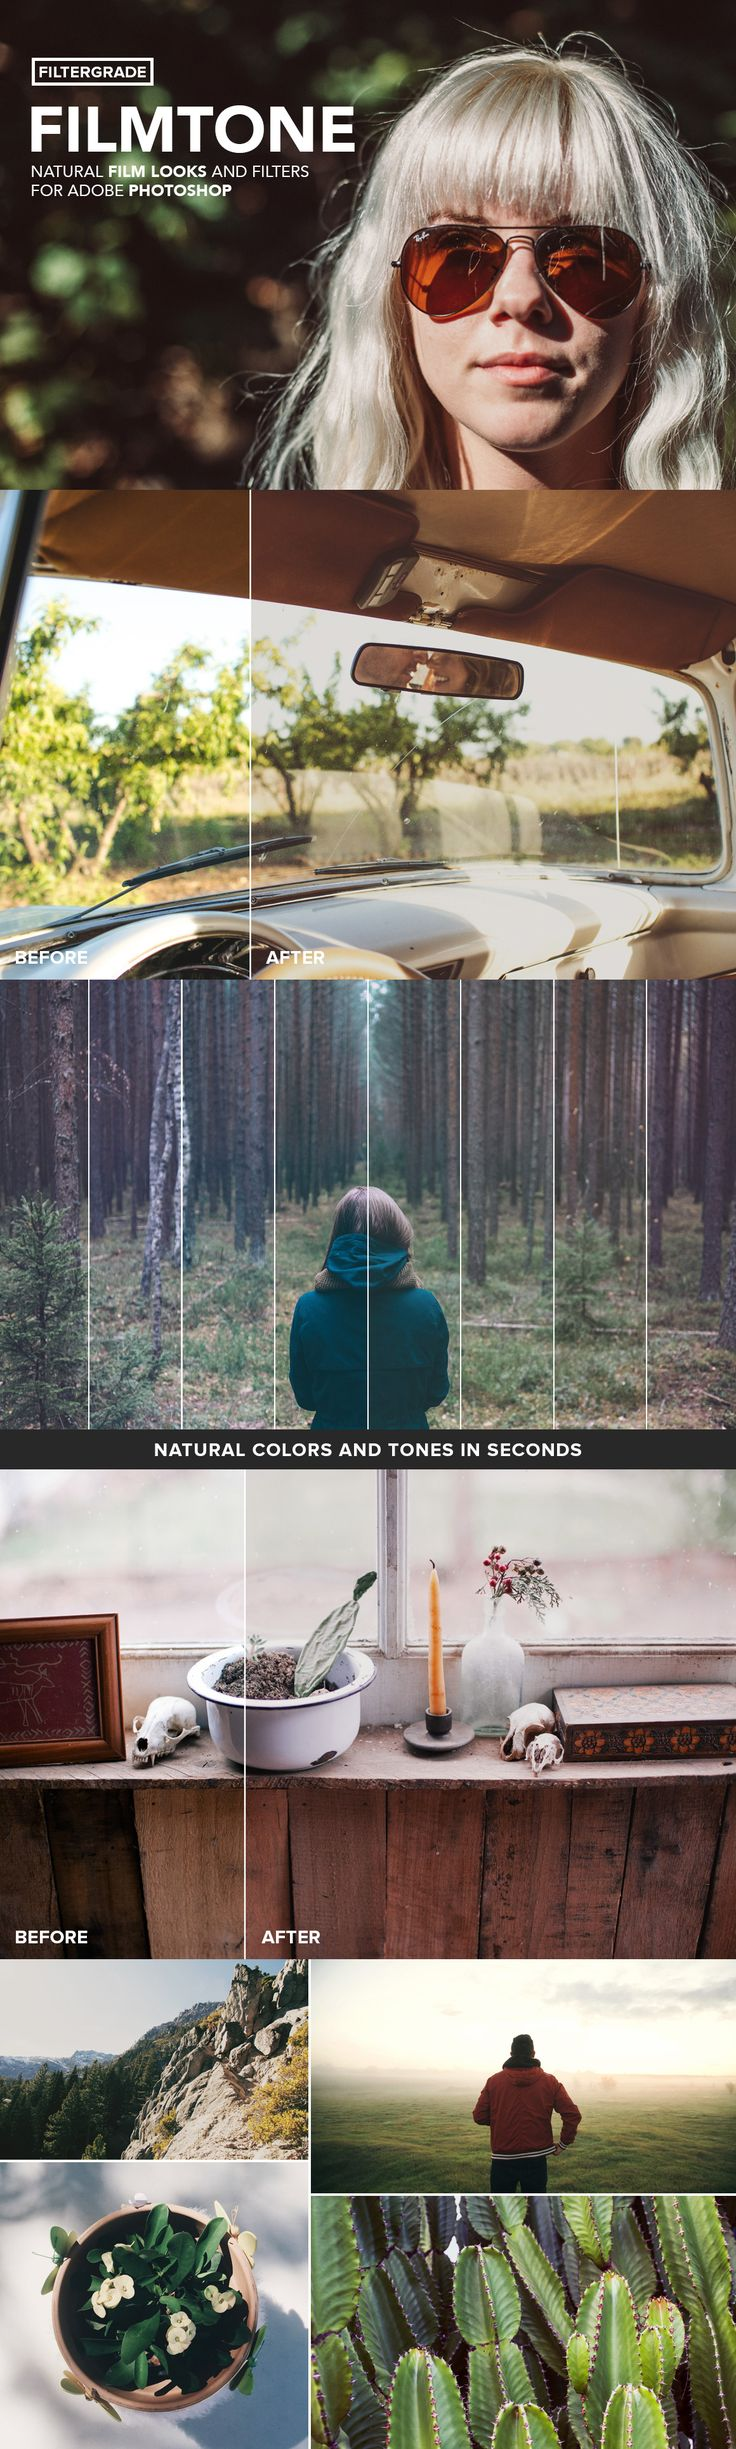 Create natural film looks for your photography in seconds! A set of of 25 high quality Photoshop actions to help you blend light, color, and shade with tonal adjustments.